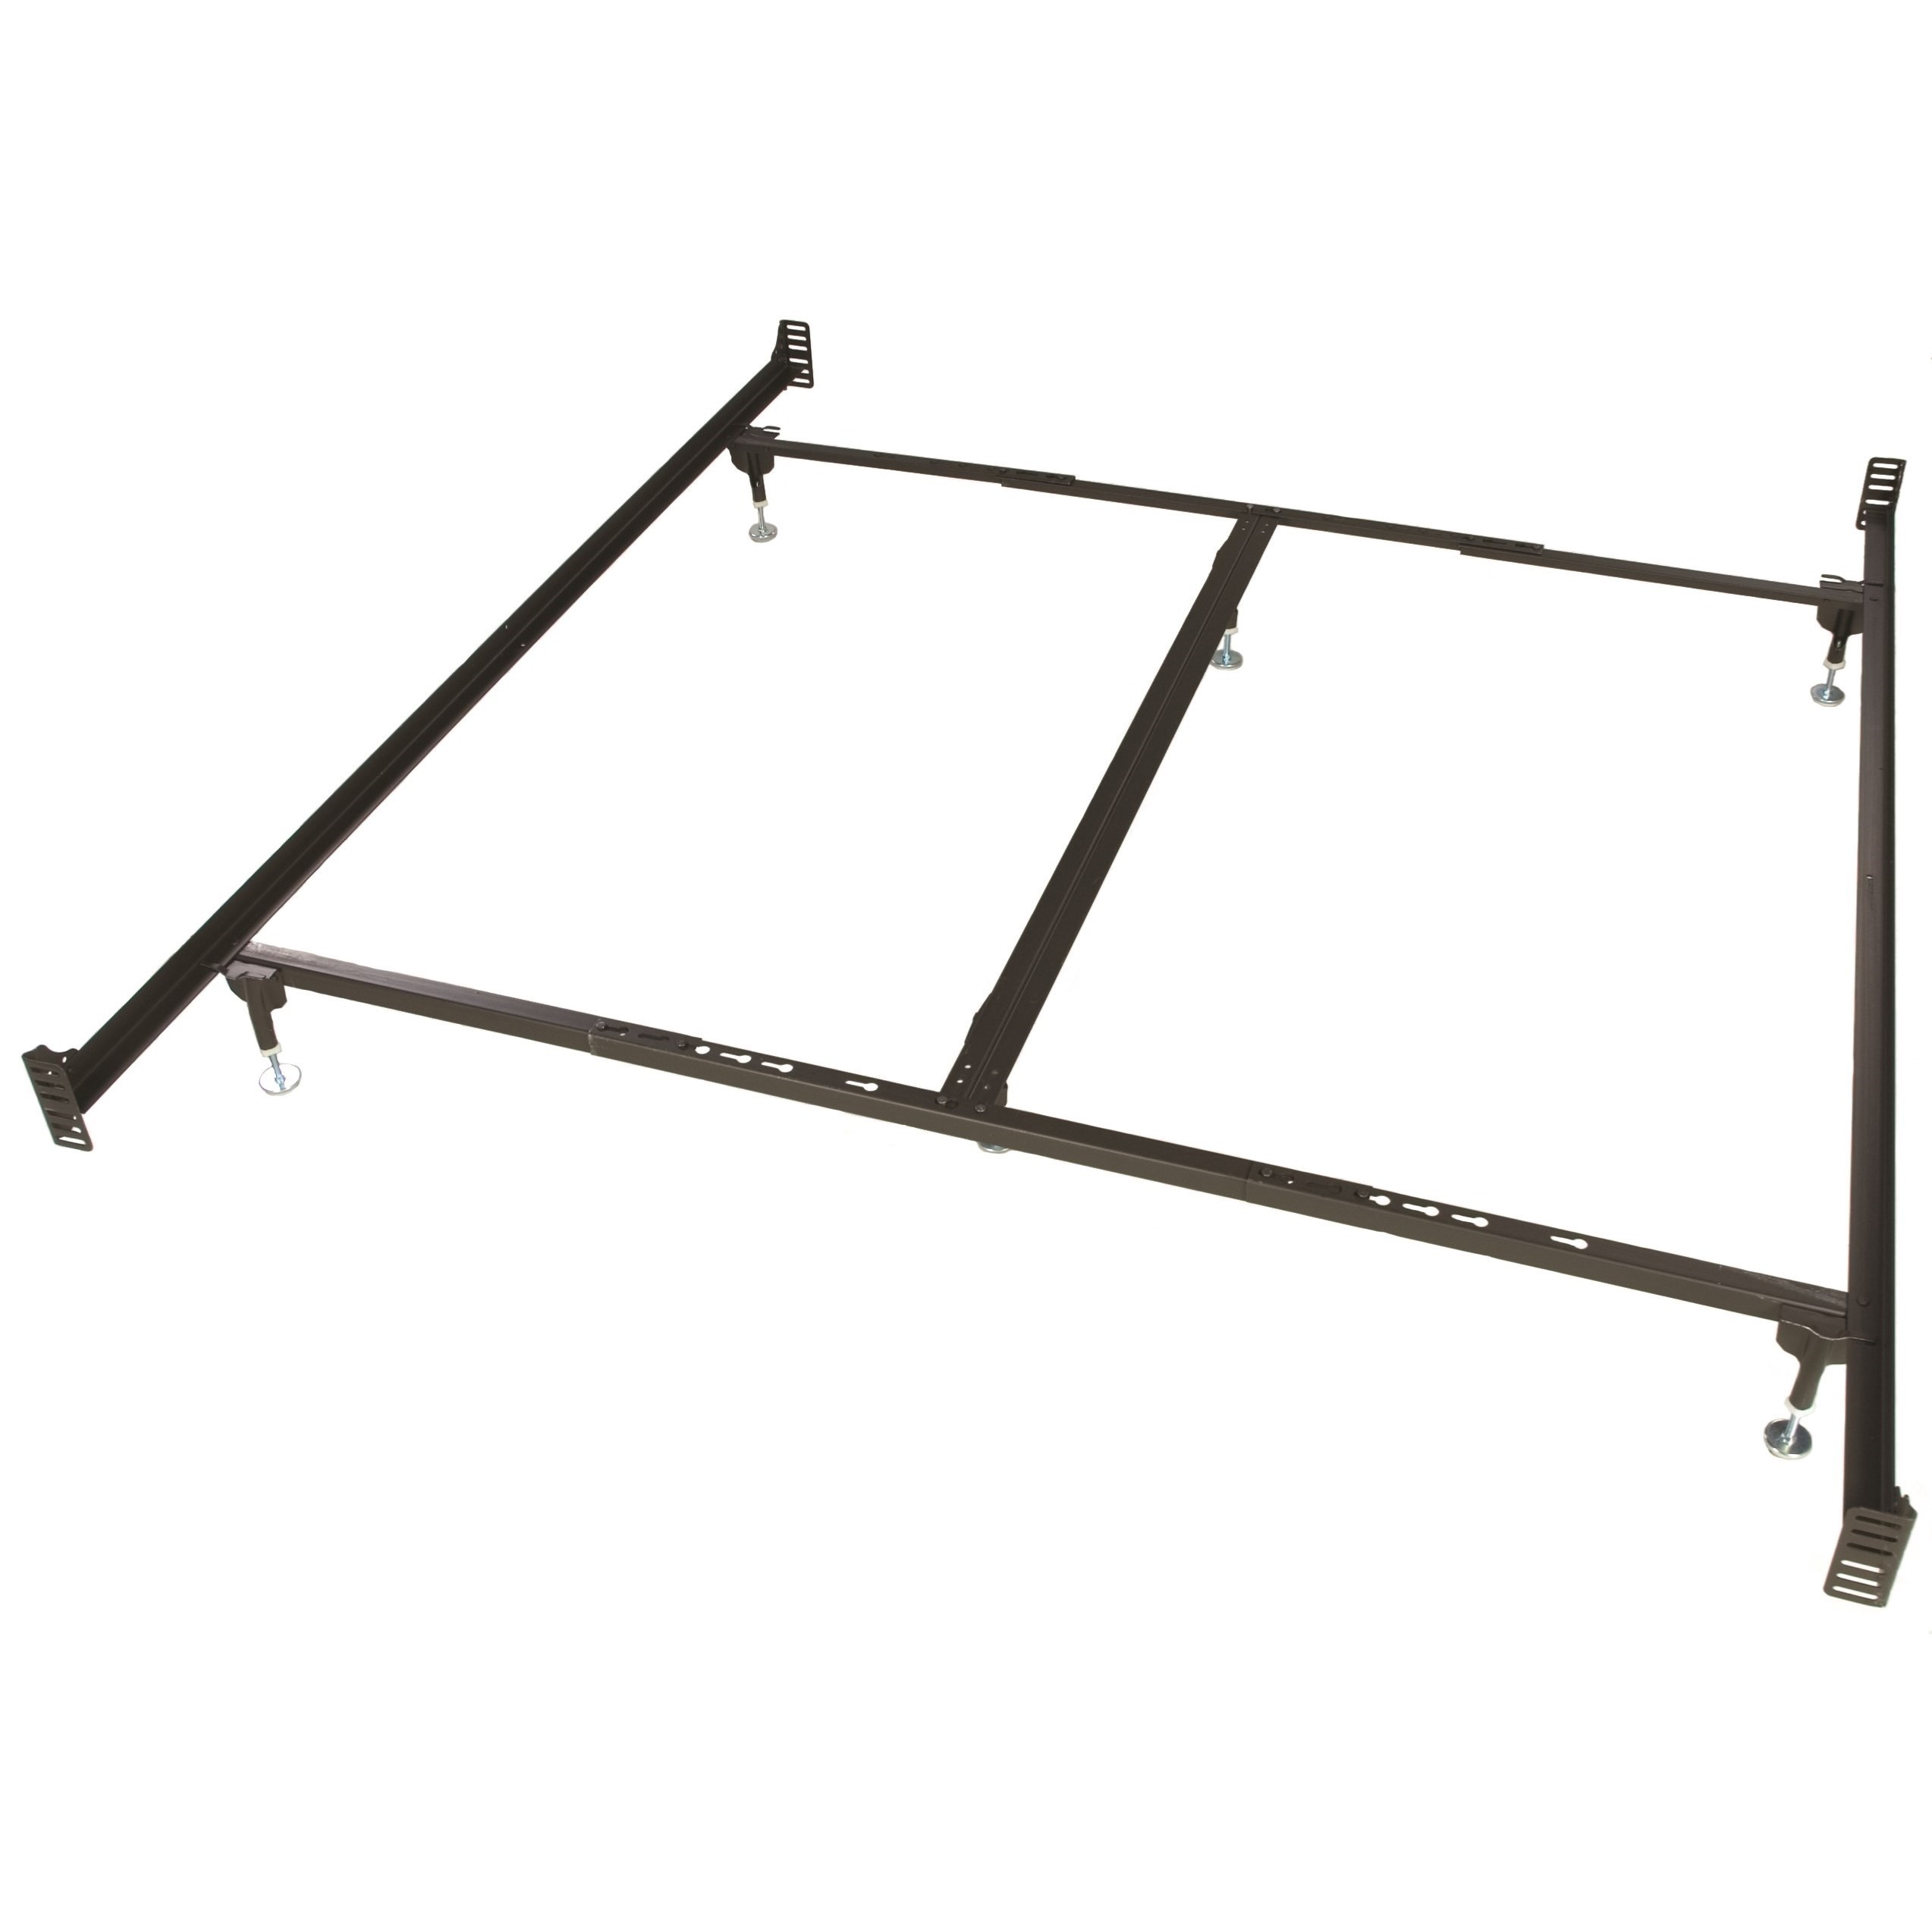 Hdbd FTBD Frames Queen/King/Cal King 2 Ended Bed Frame by Glideaway at Beds N Stuff